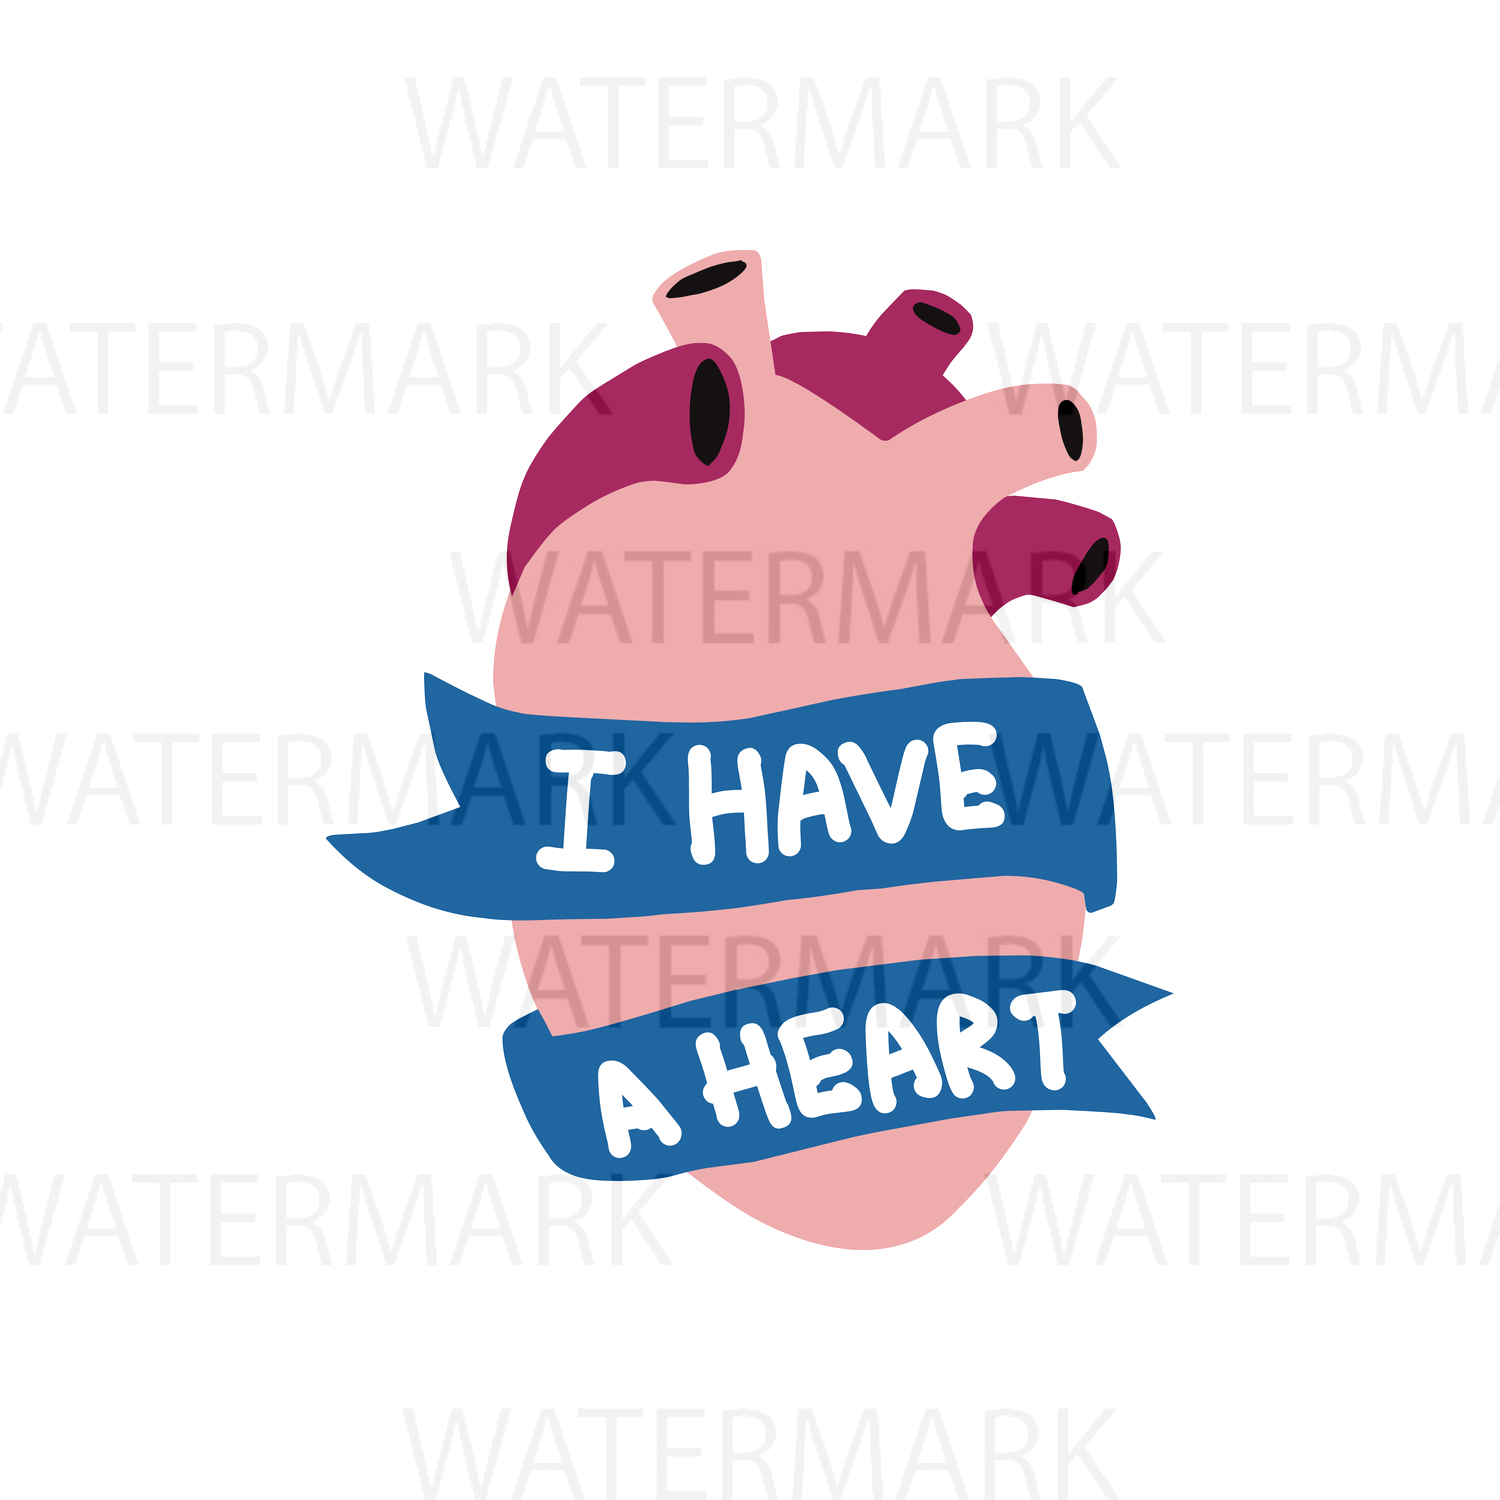 I have a heart - SVG/JPG/PNG - Hand Drawing example image 1